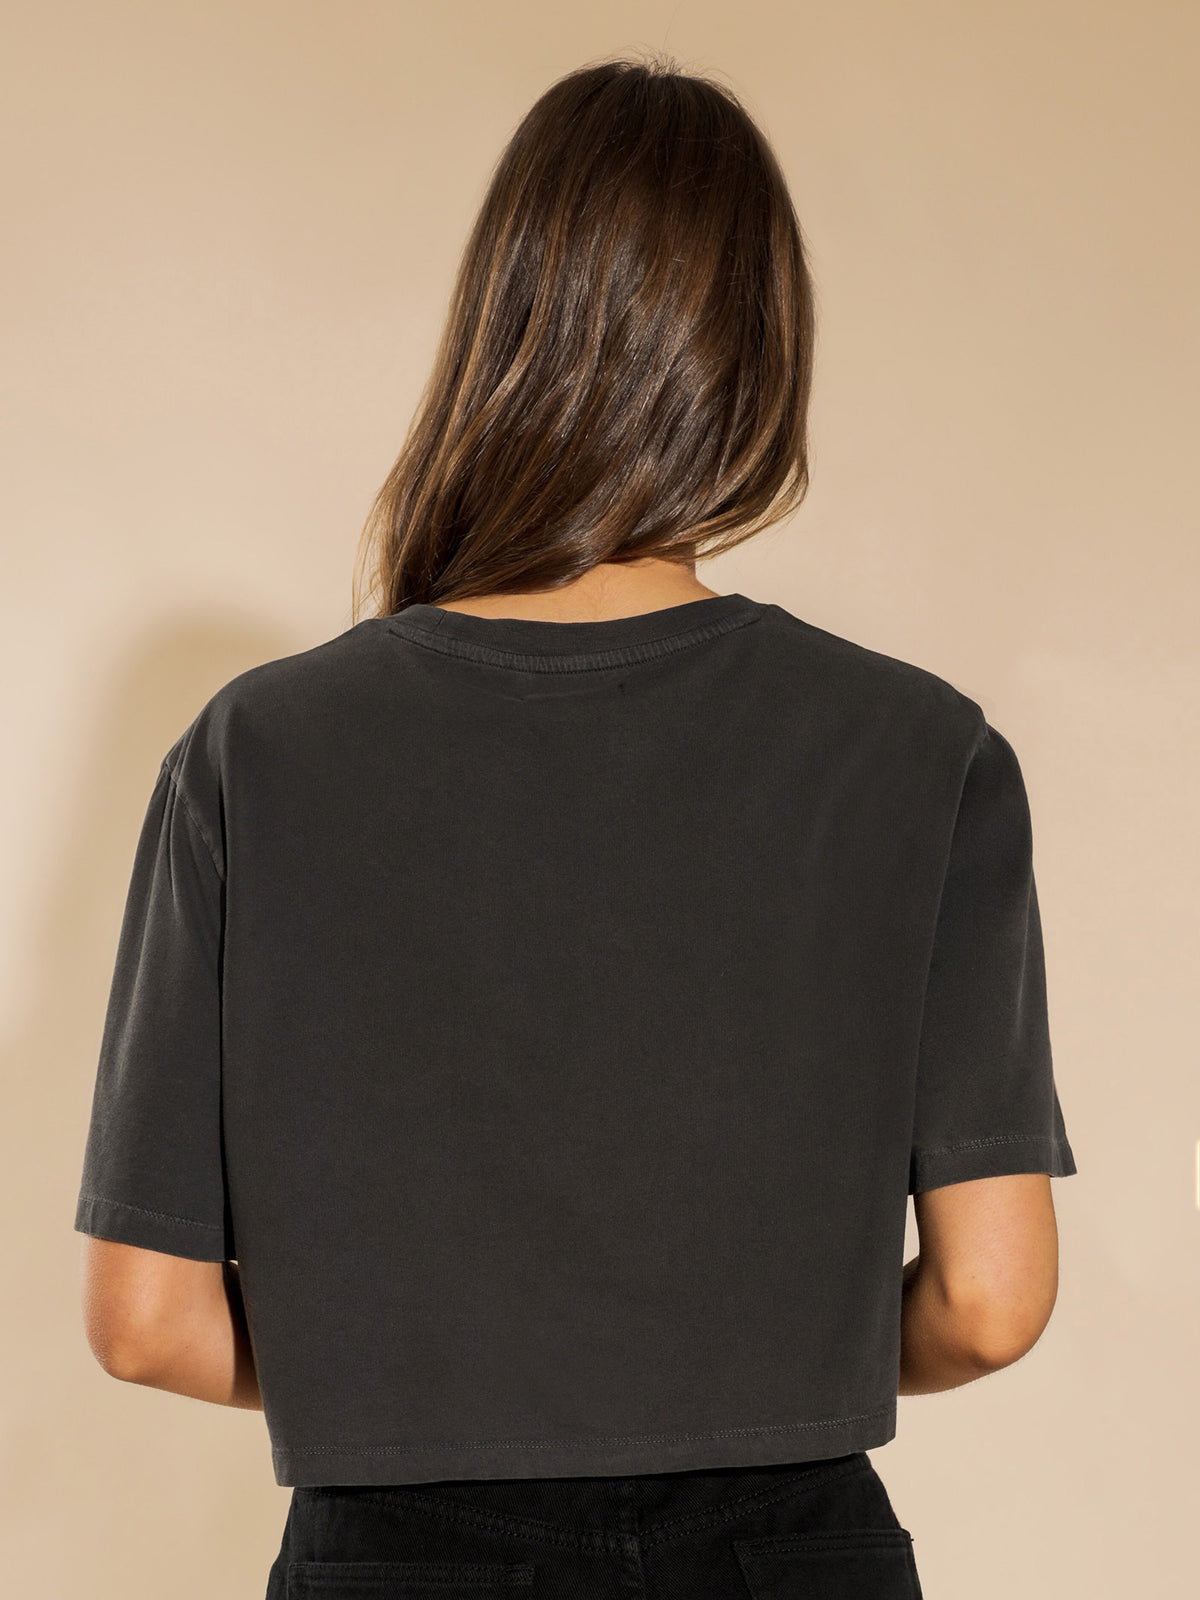 Lucky Guy Crop T-Shirt in Washed Black